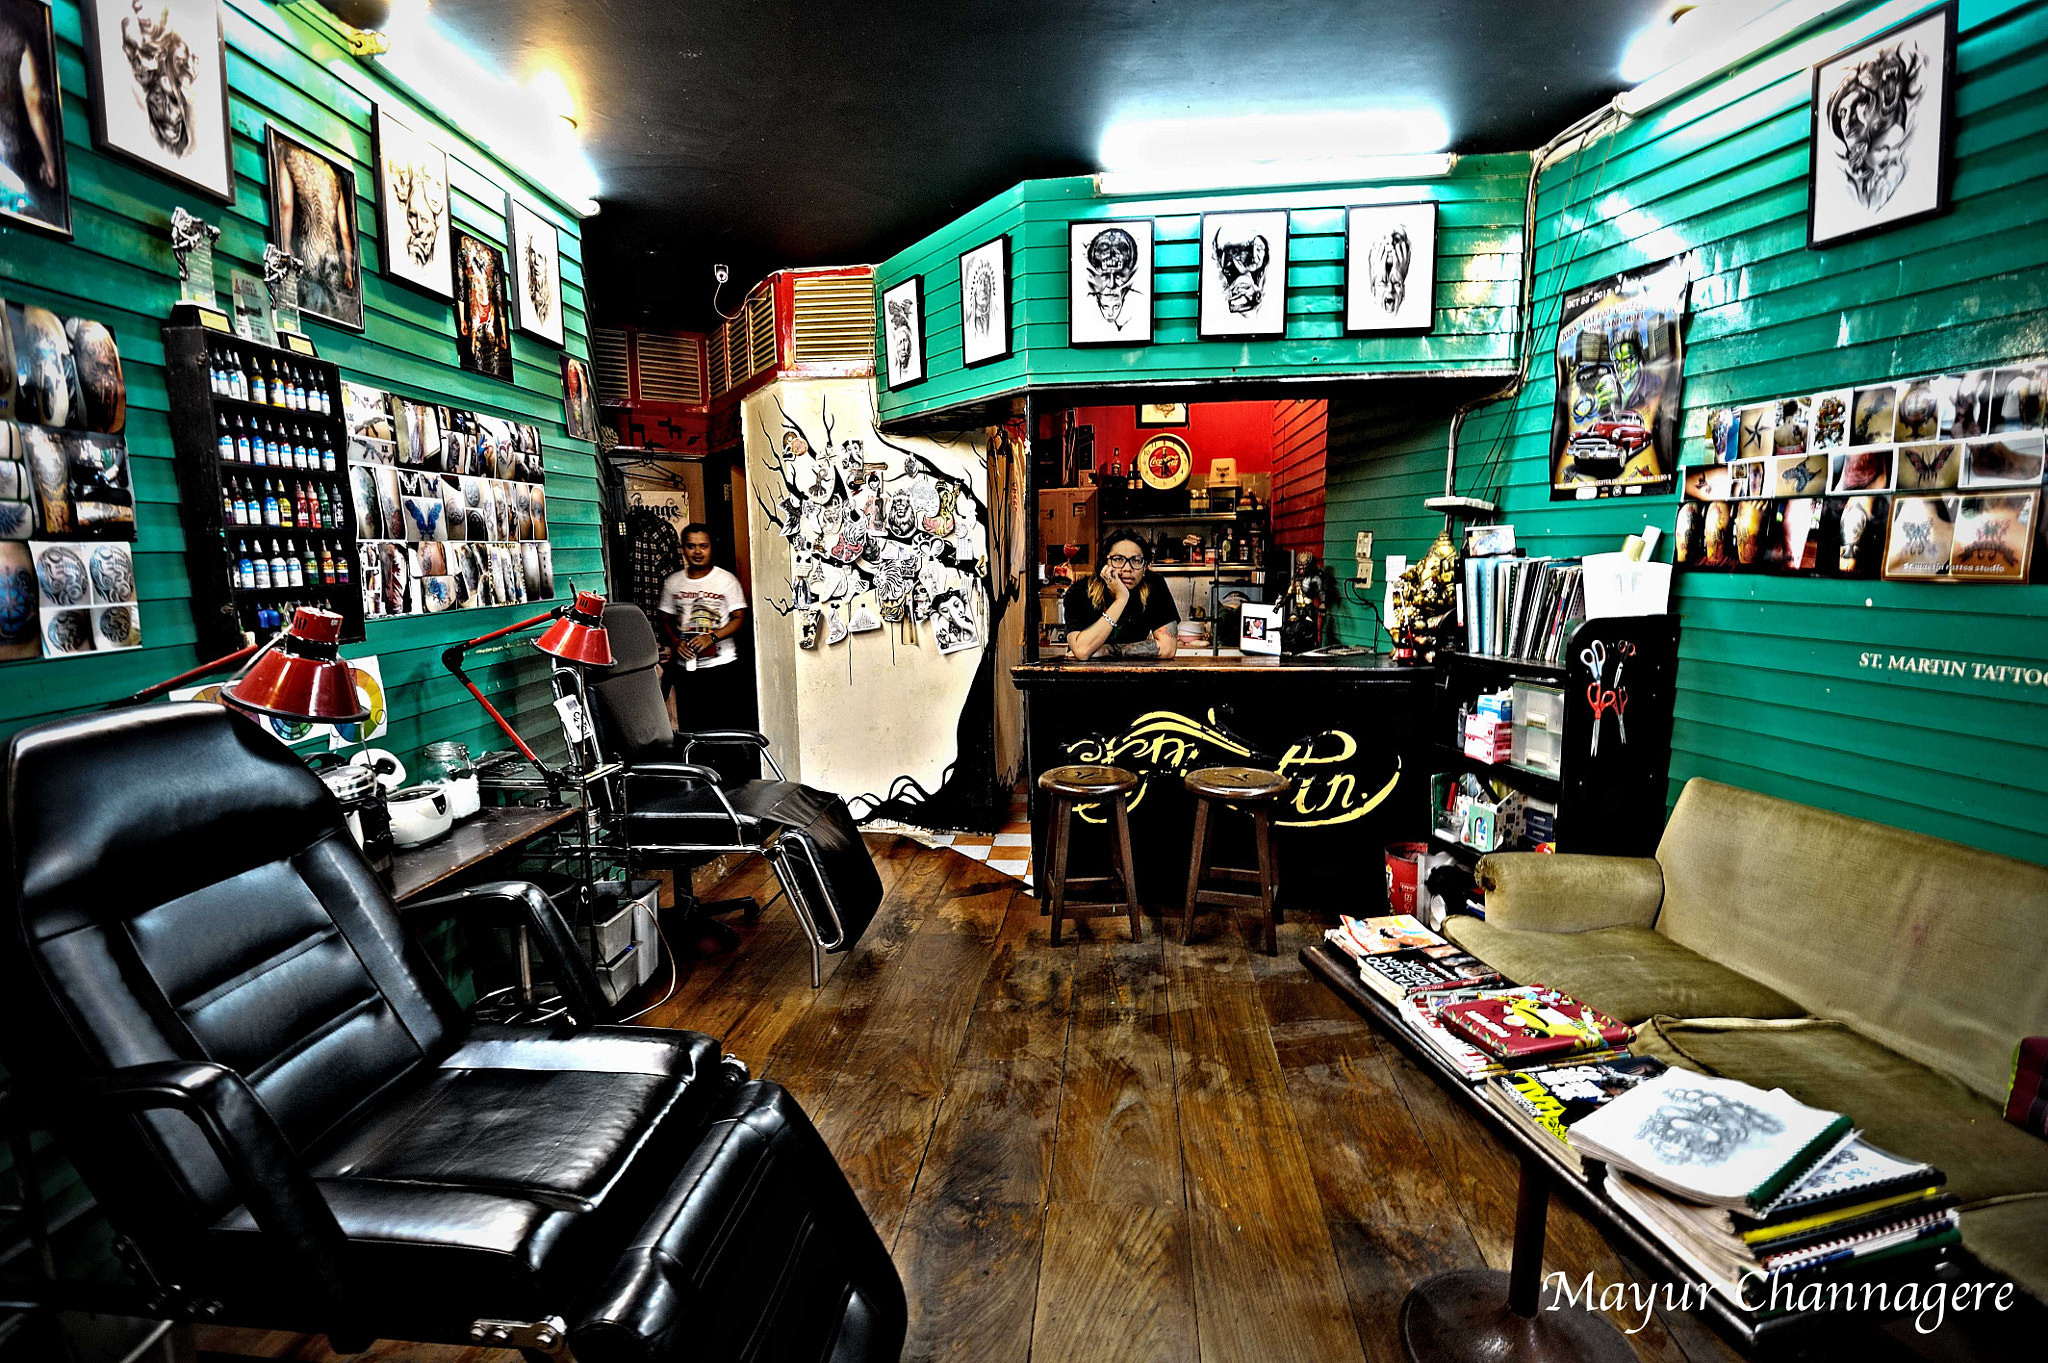 Photograph St. Martins Tattoo Bar on KAU San road, Bangkok by Mayur Channagere on 500px